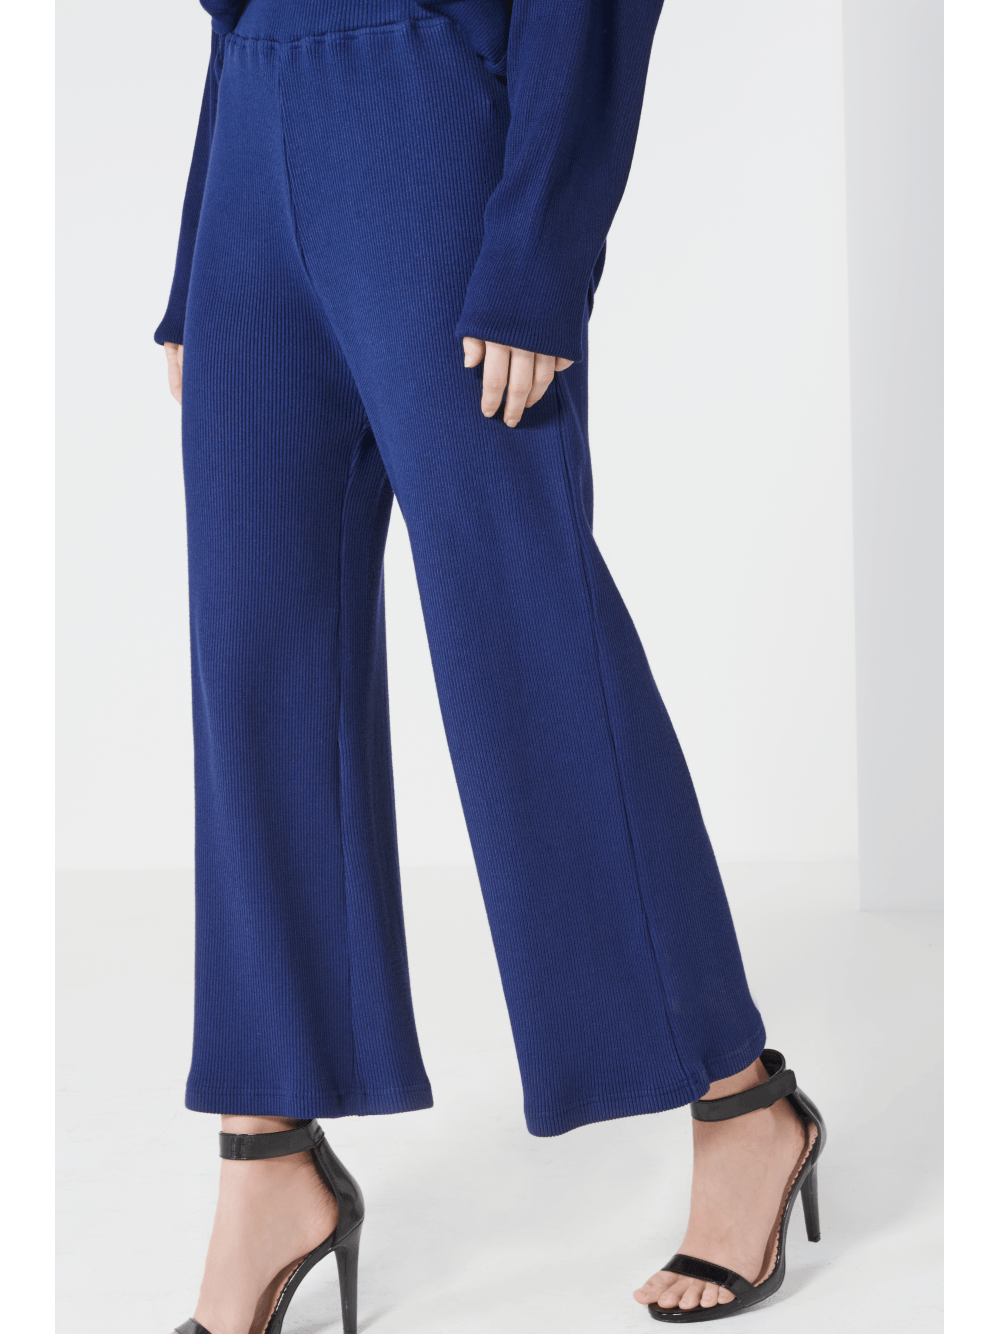 Navy Rib Knit Cropped Flare